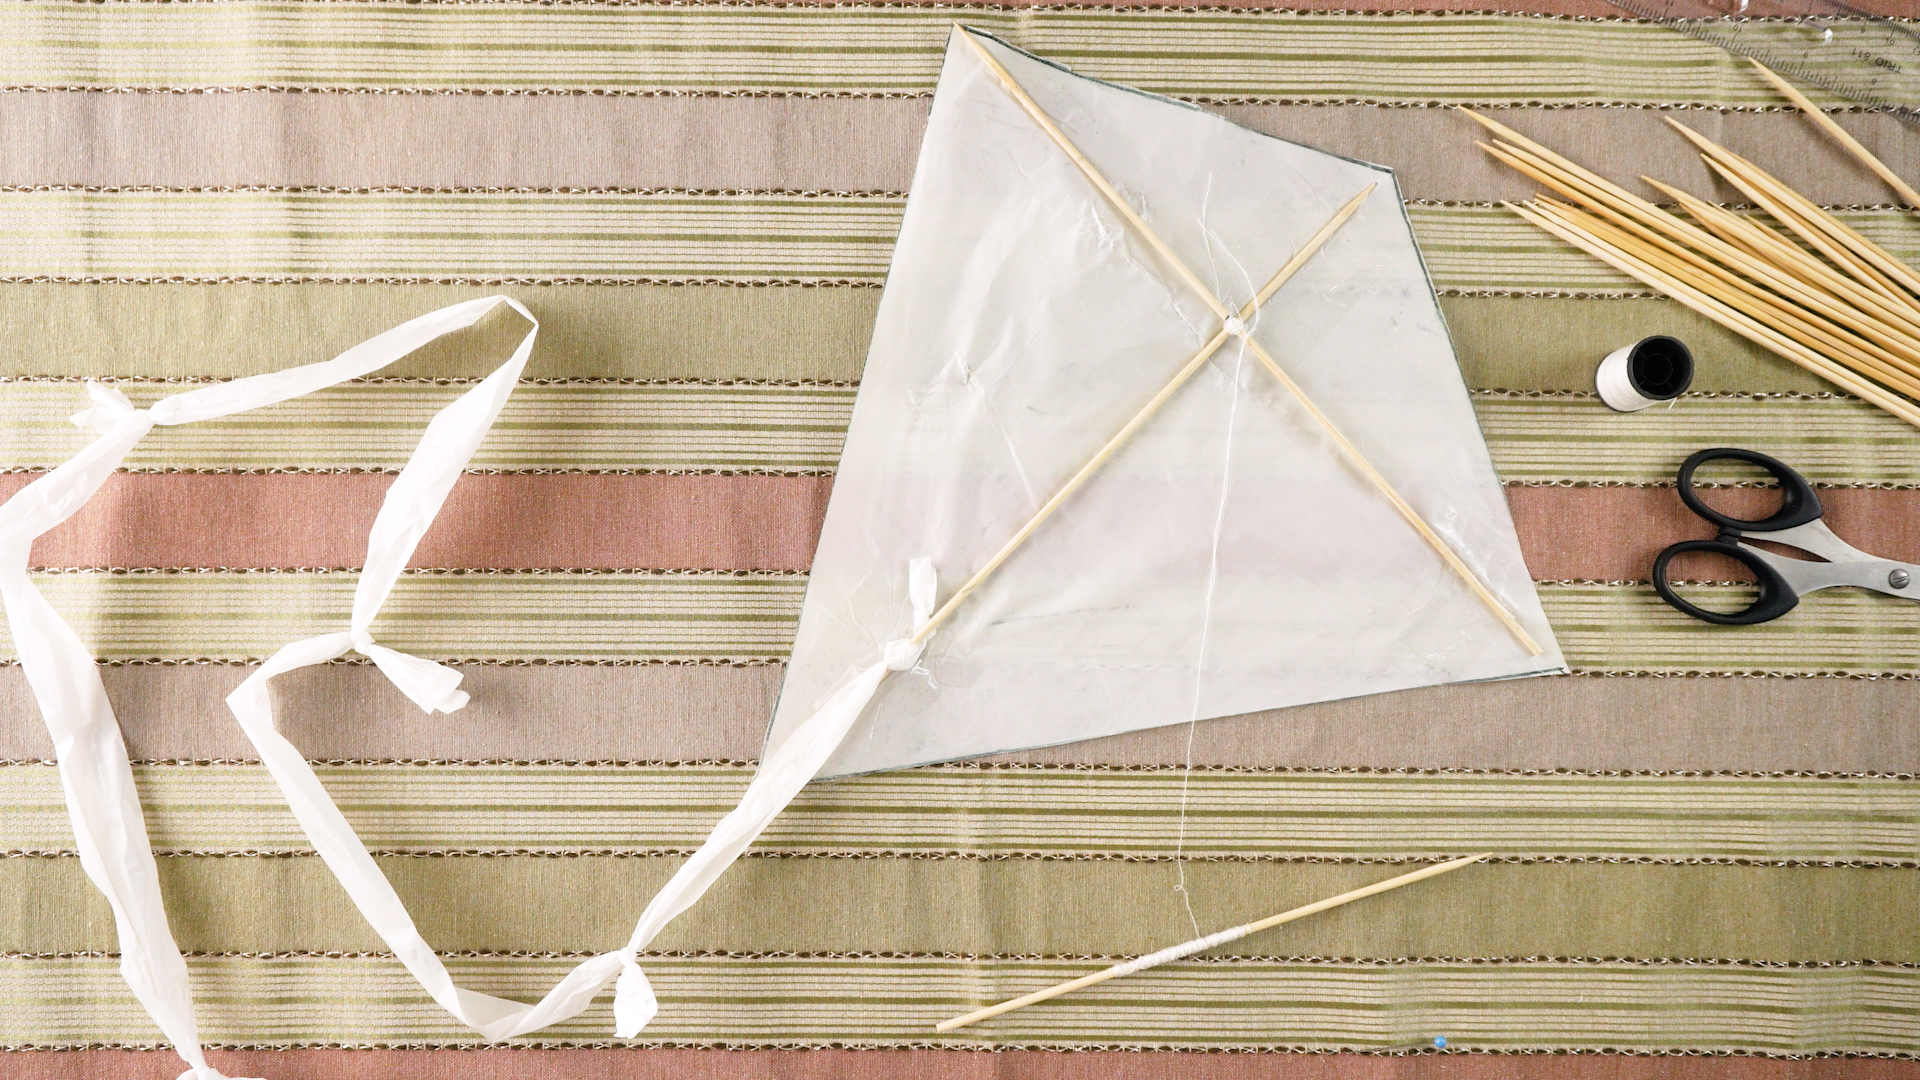 How To Make A Kite Out Of A Plastic Bag 9 Steps With